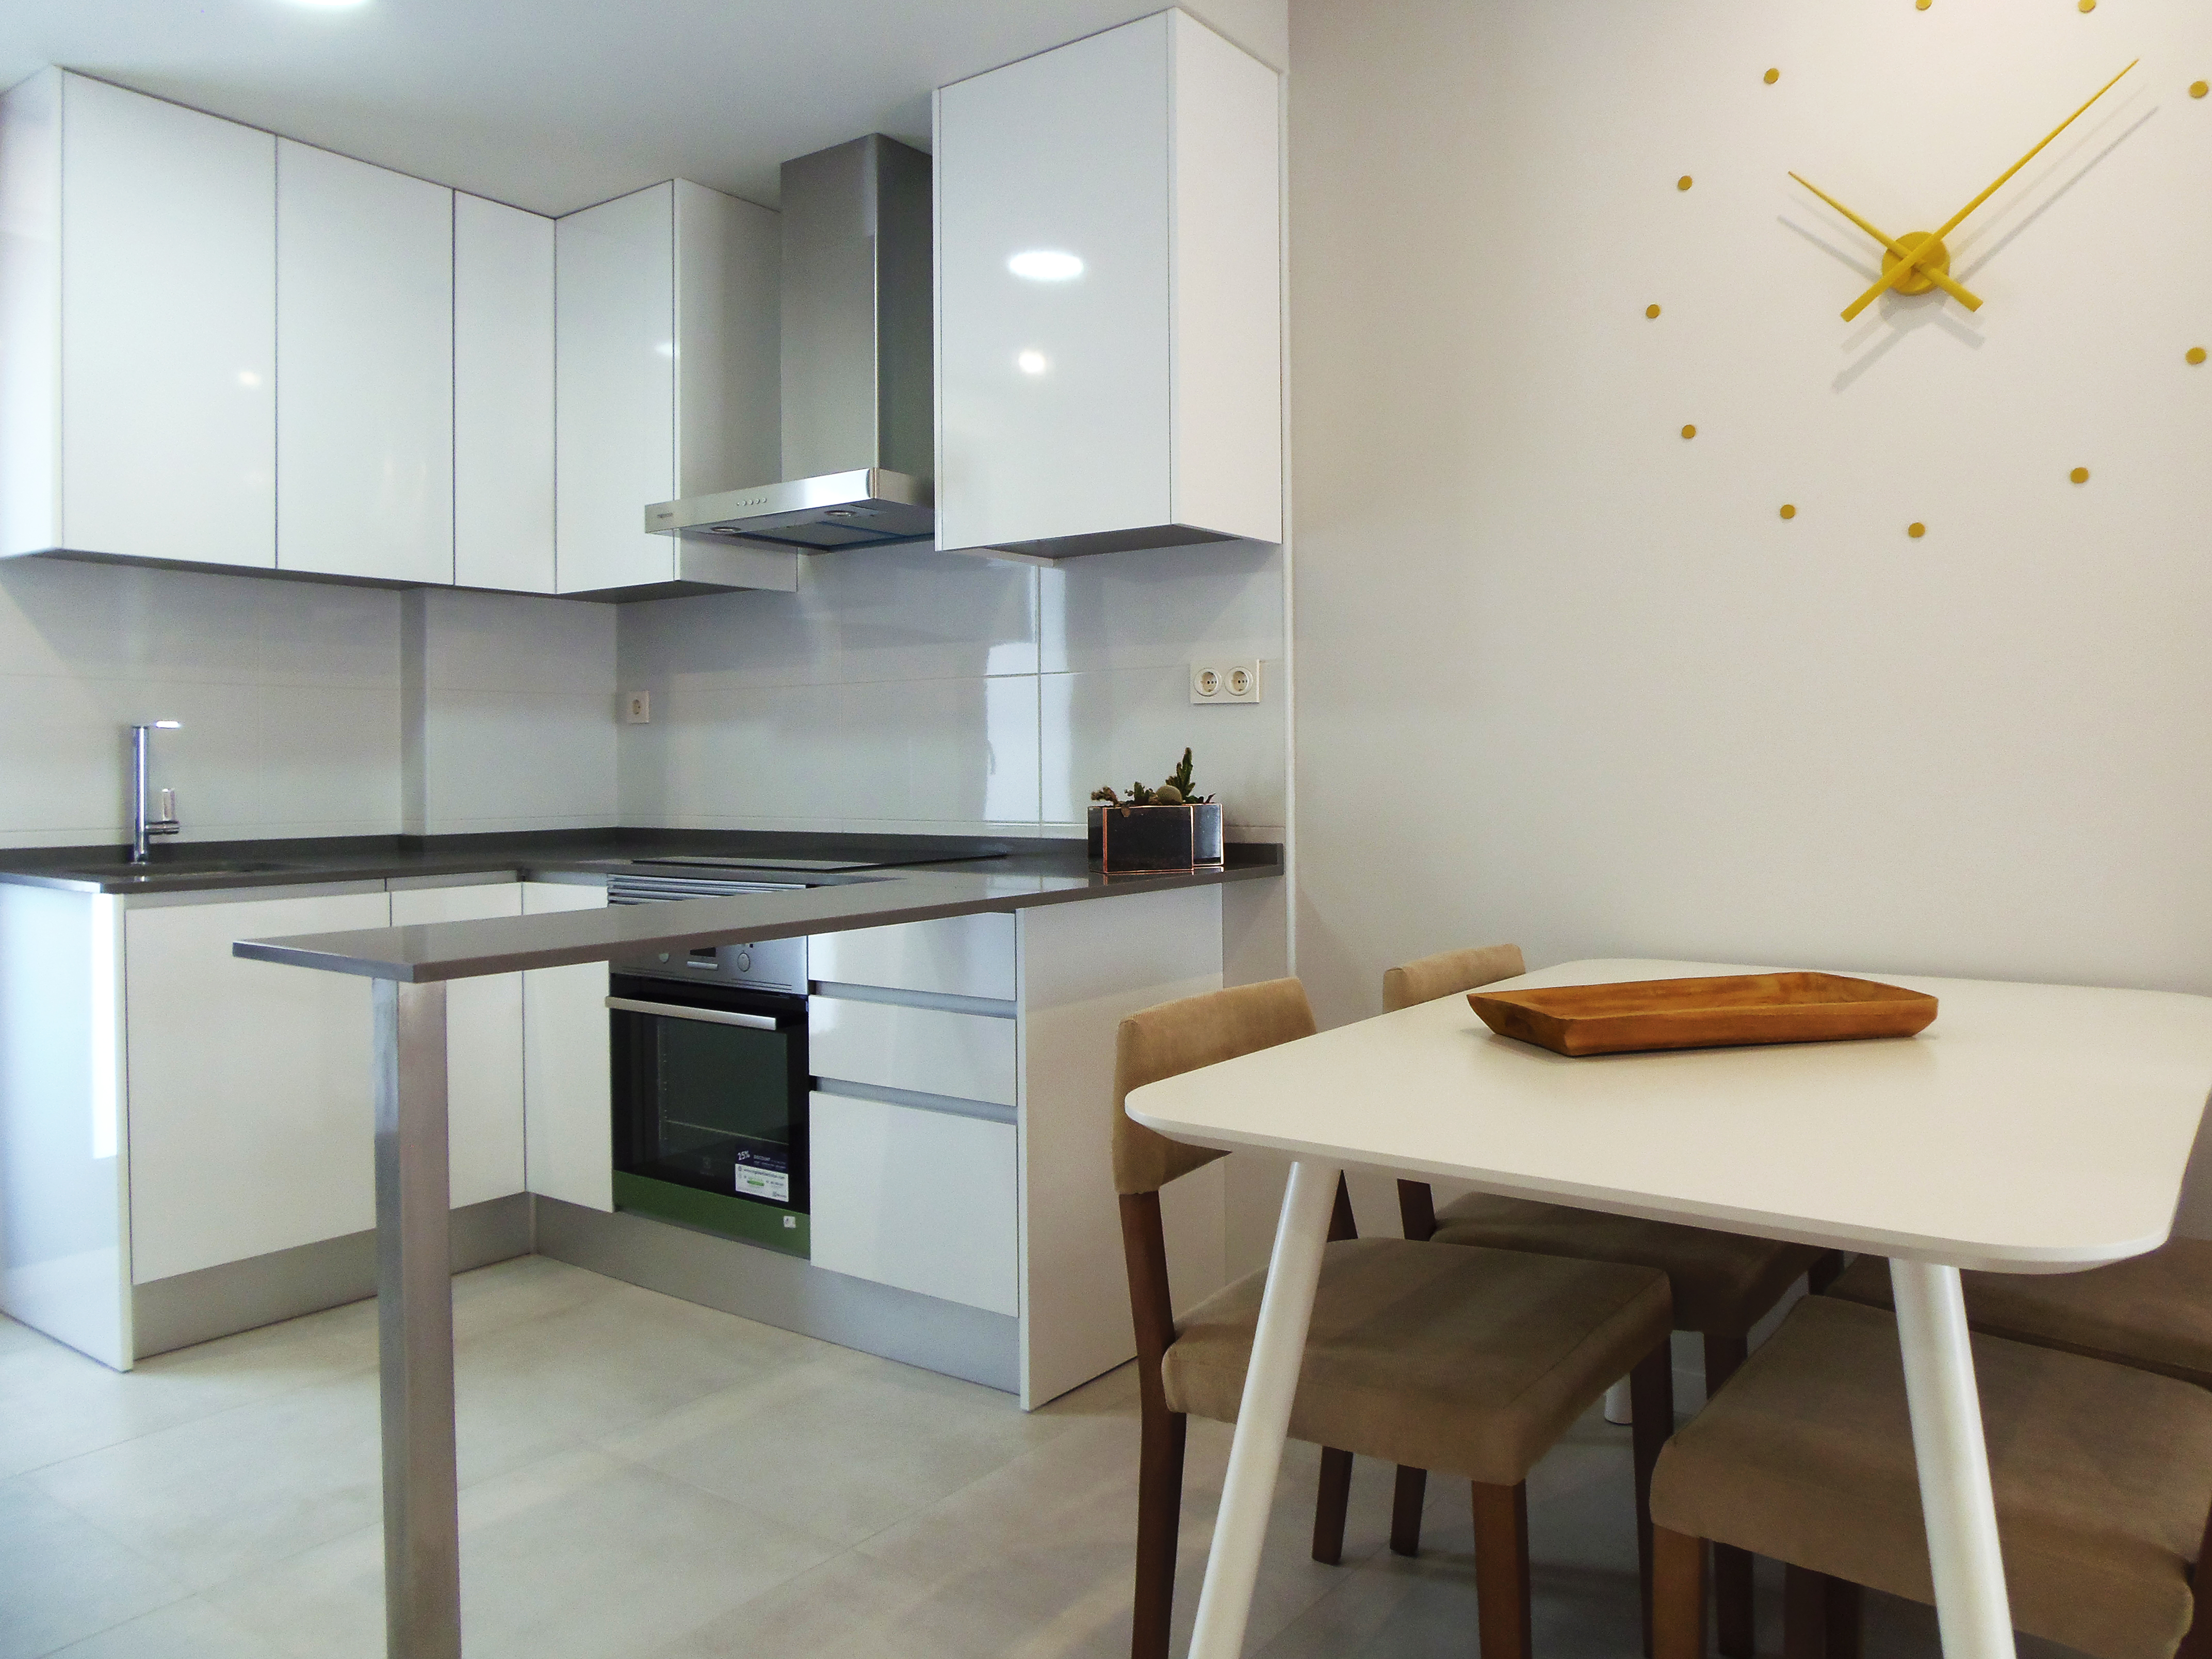 3 bedroom apartment For Sale in Mil Palmeras - photograph 5